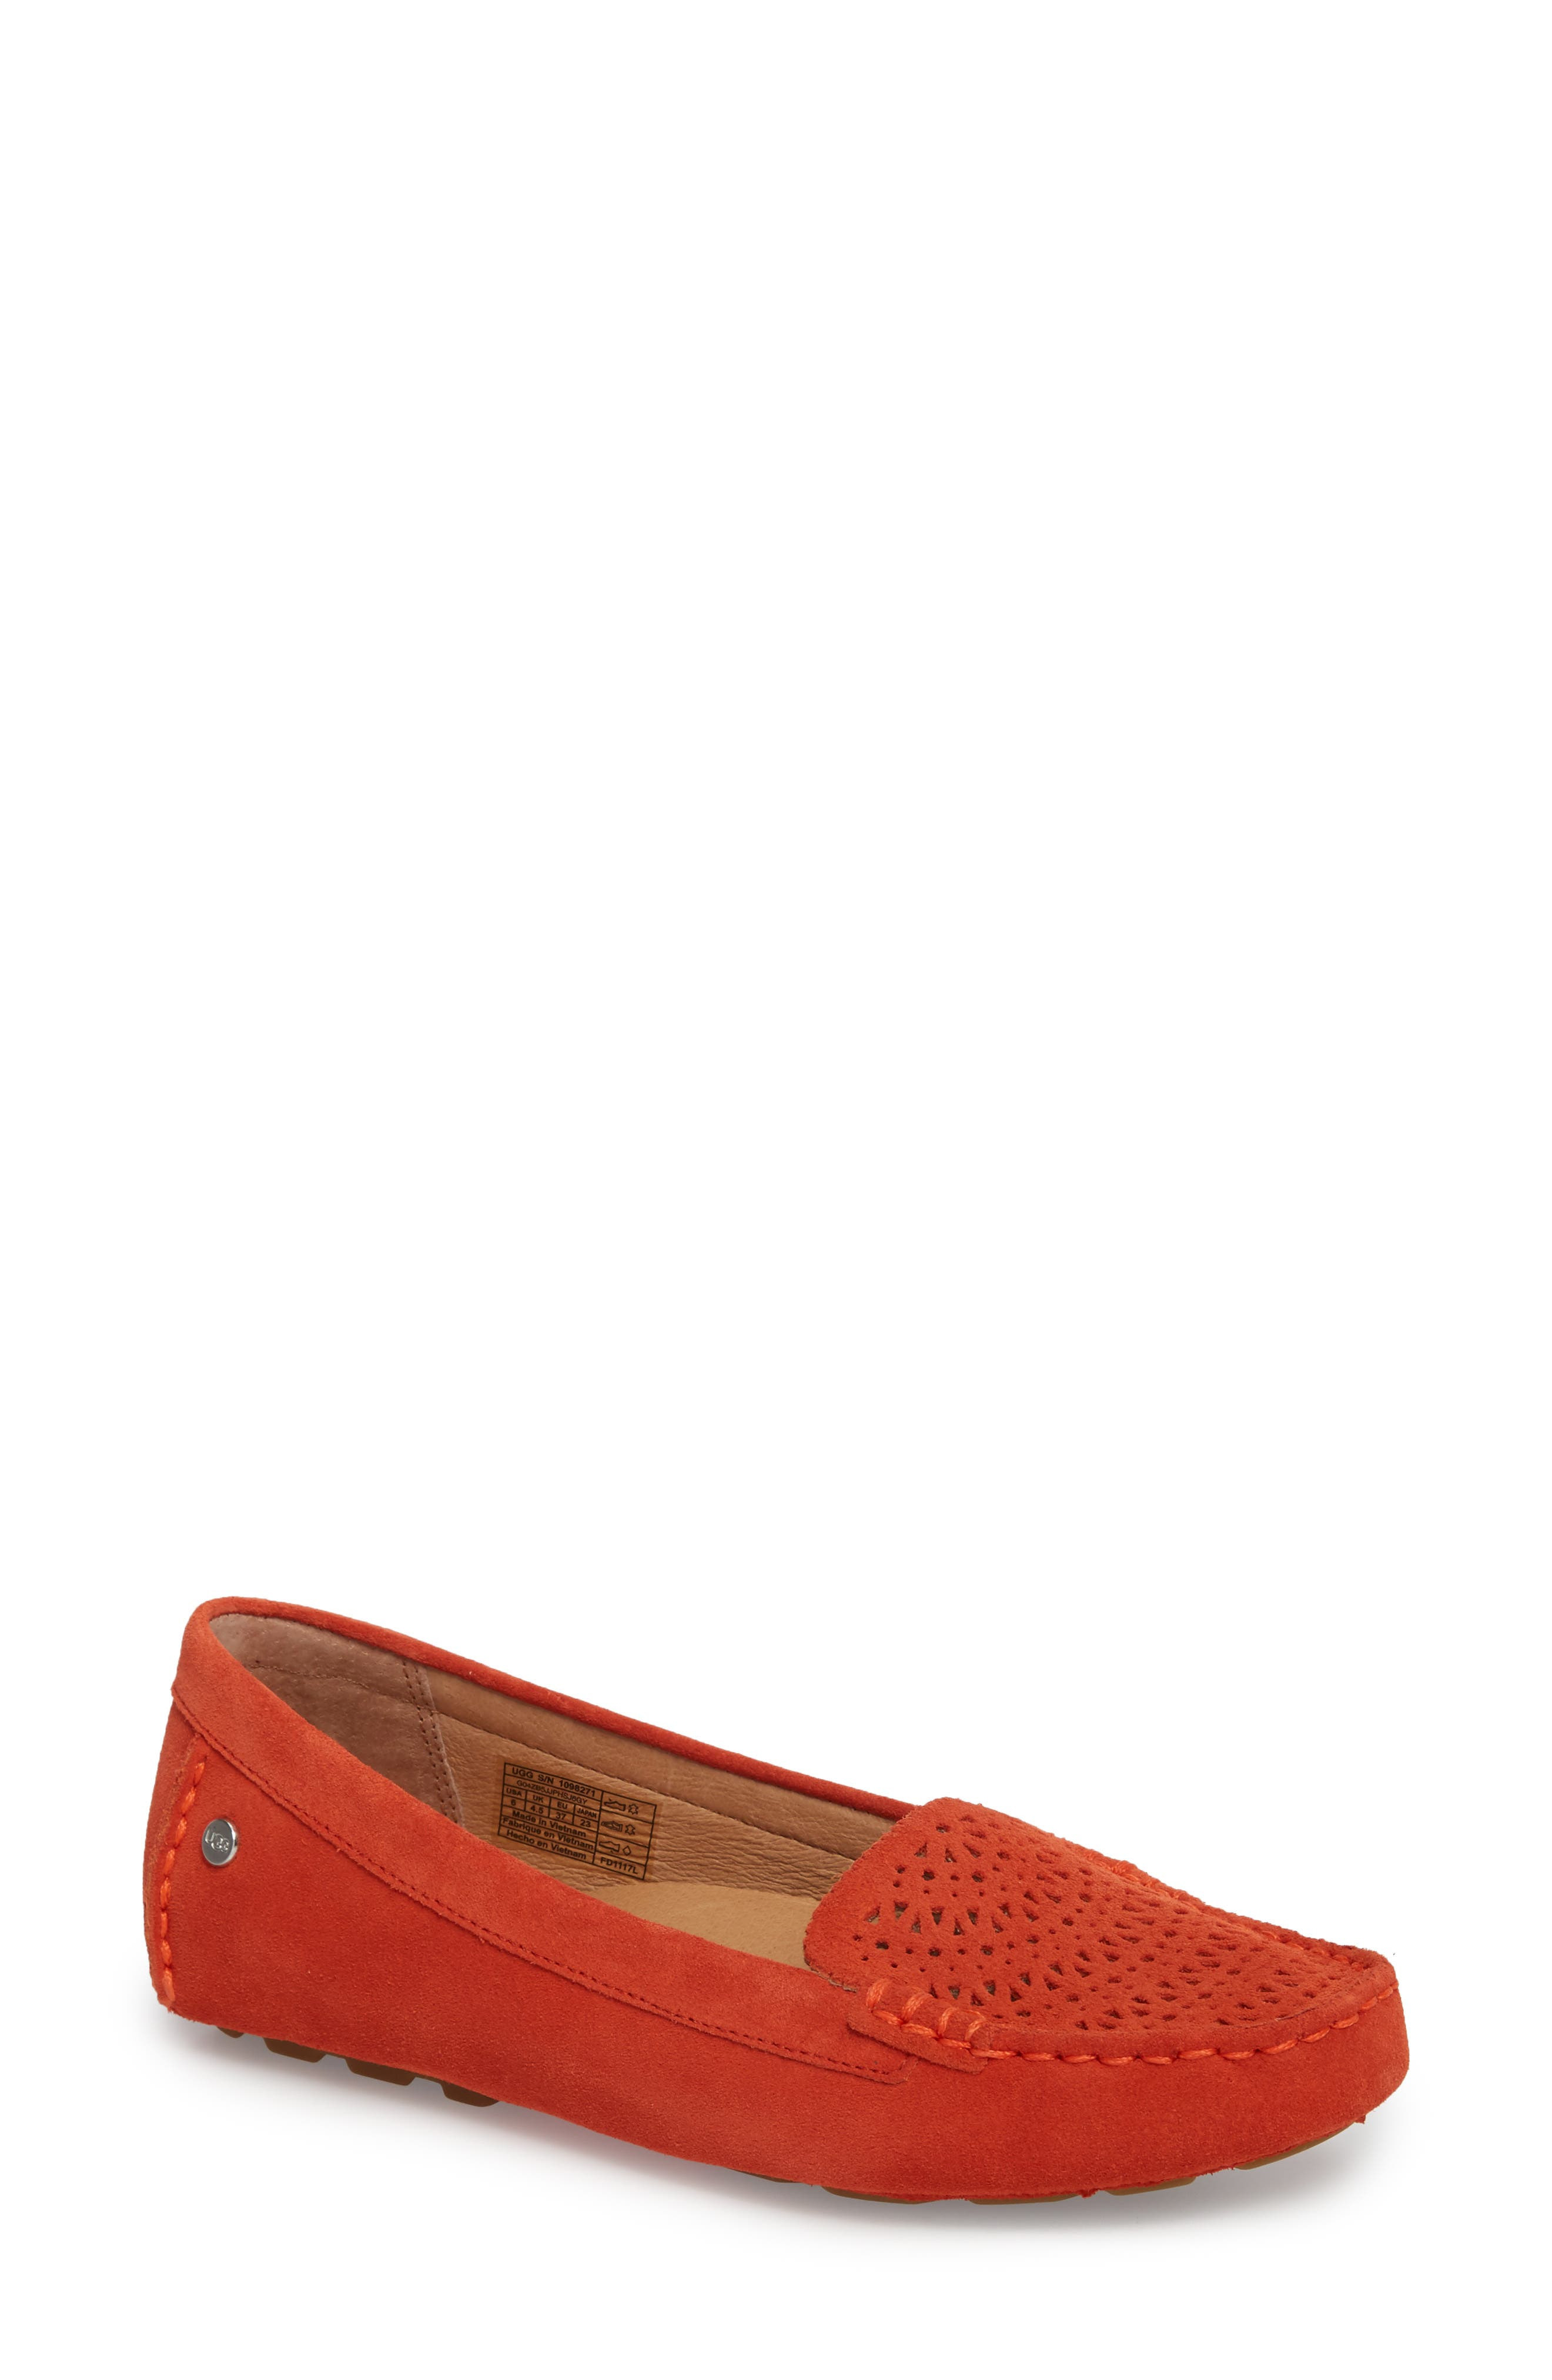 Clair Flat,                             Main thumbnail 1, color,                             Red Orange Suede